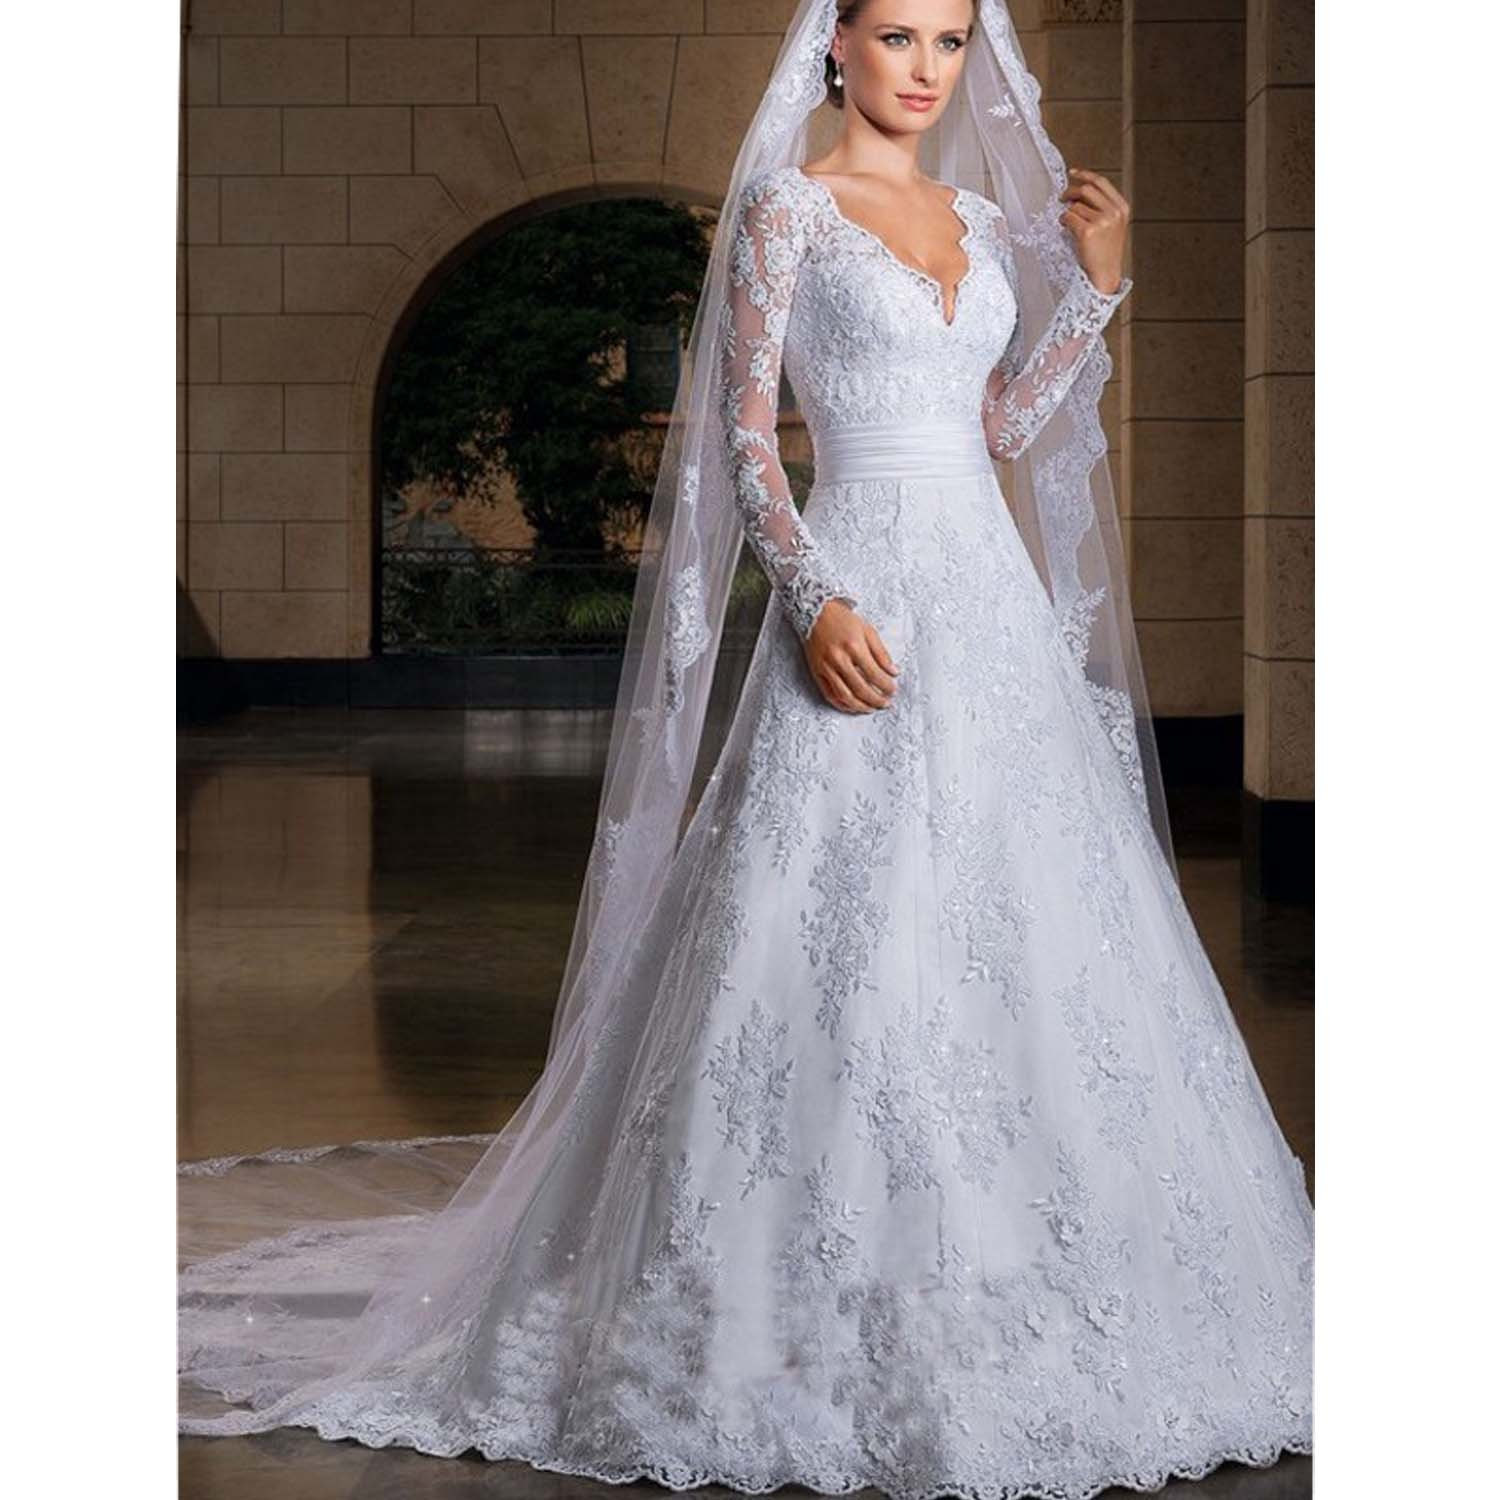 Thrsaeyi Womens Long Sleeves Lace Mermaid V-Neck Wedding Dresses Bridal Gowns at Amazon Womens Clothing store: